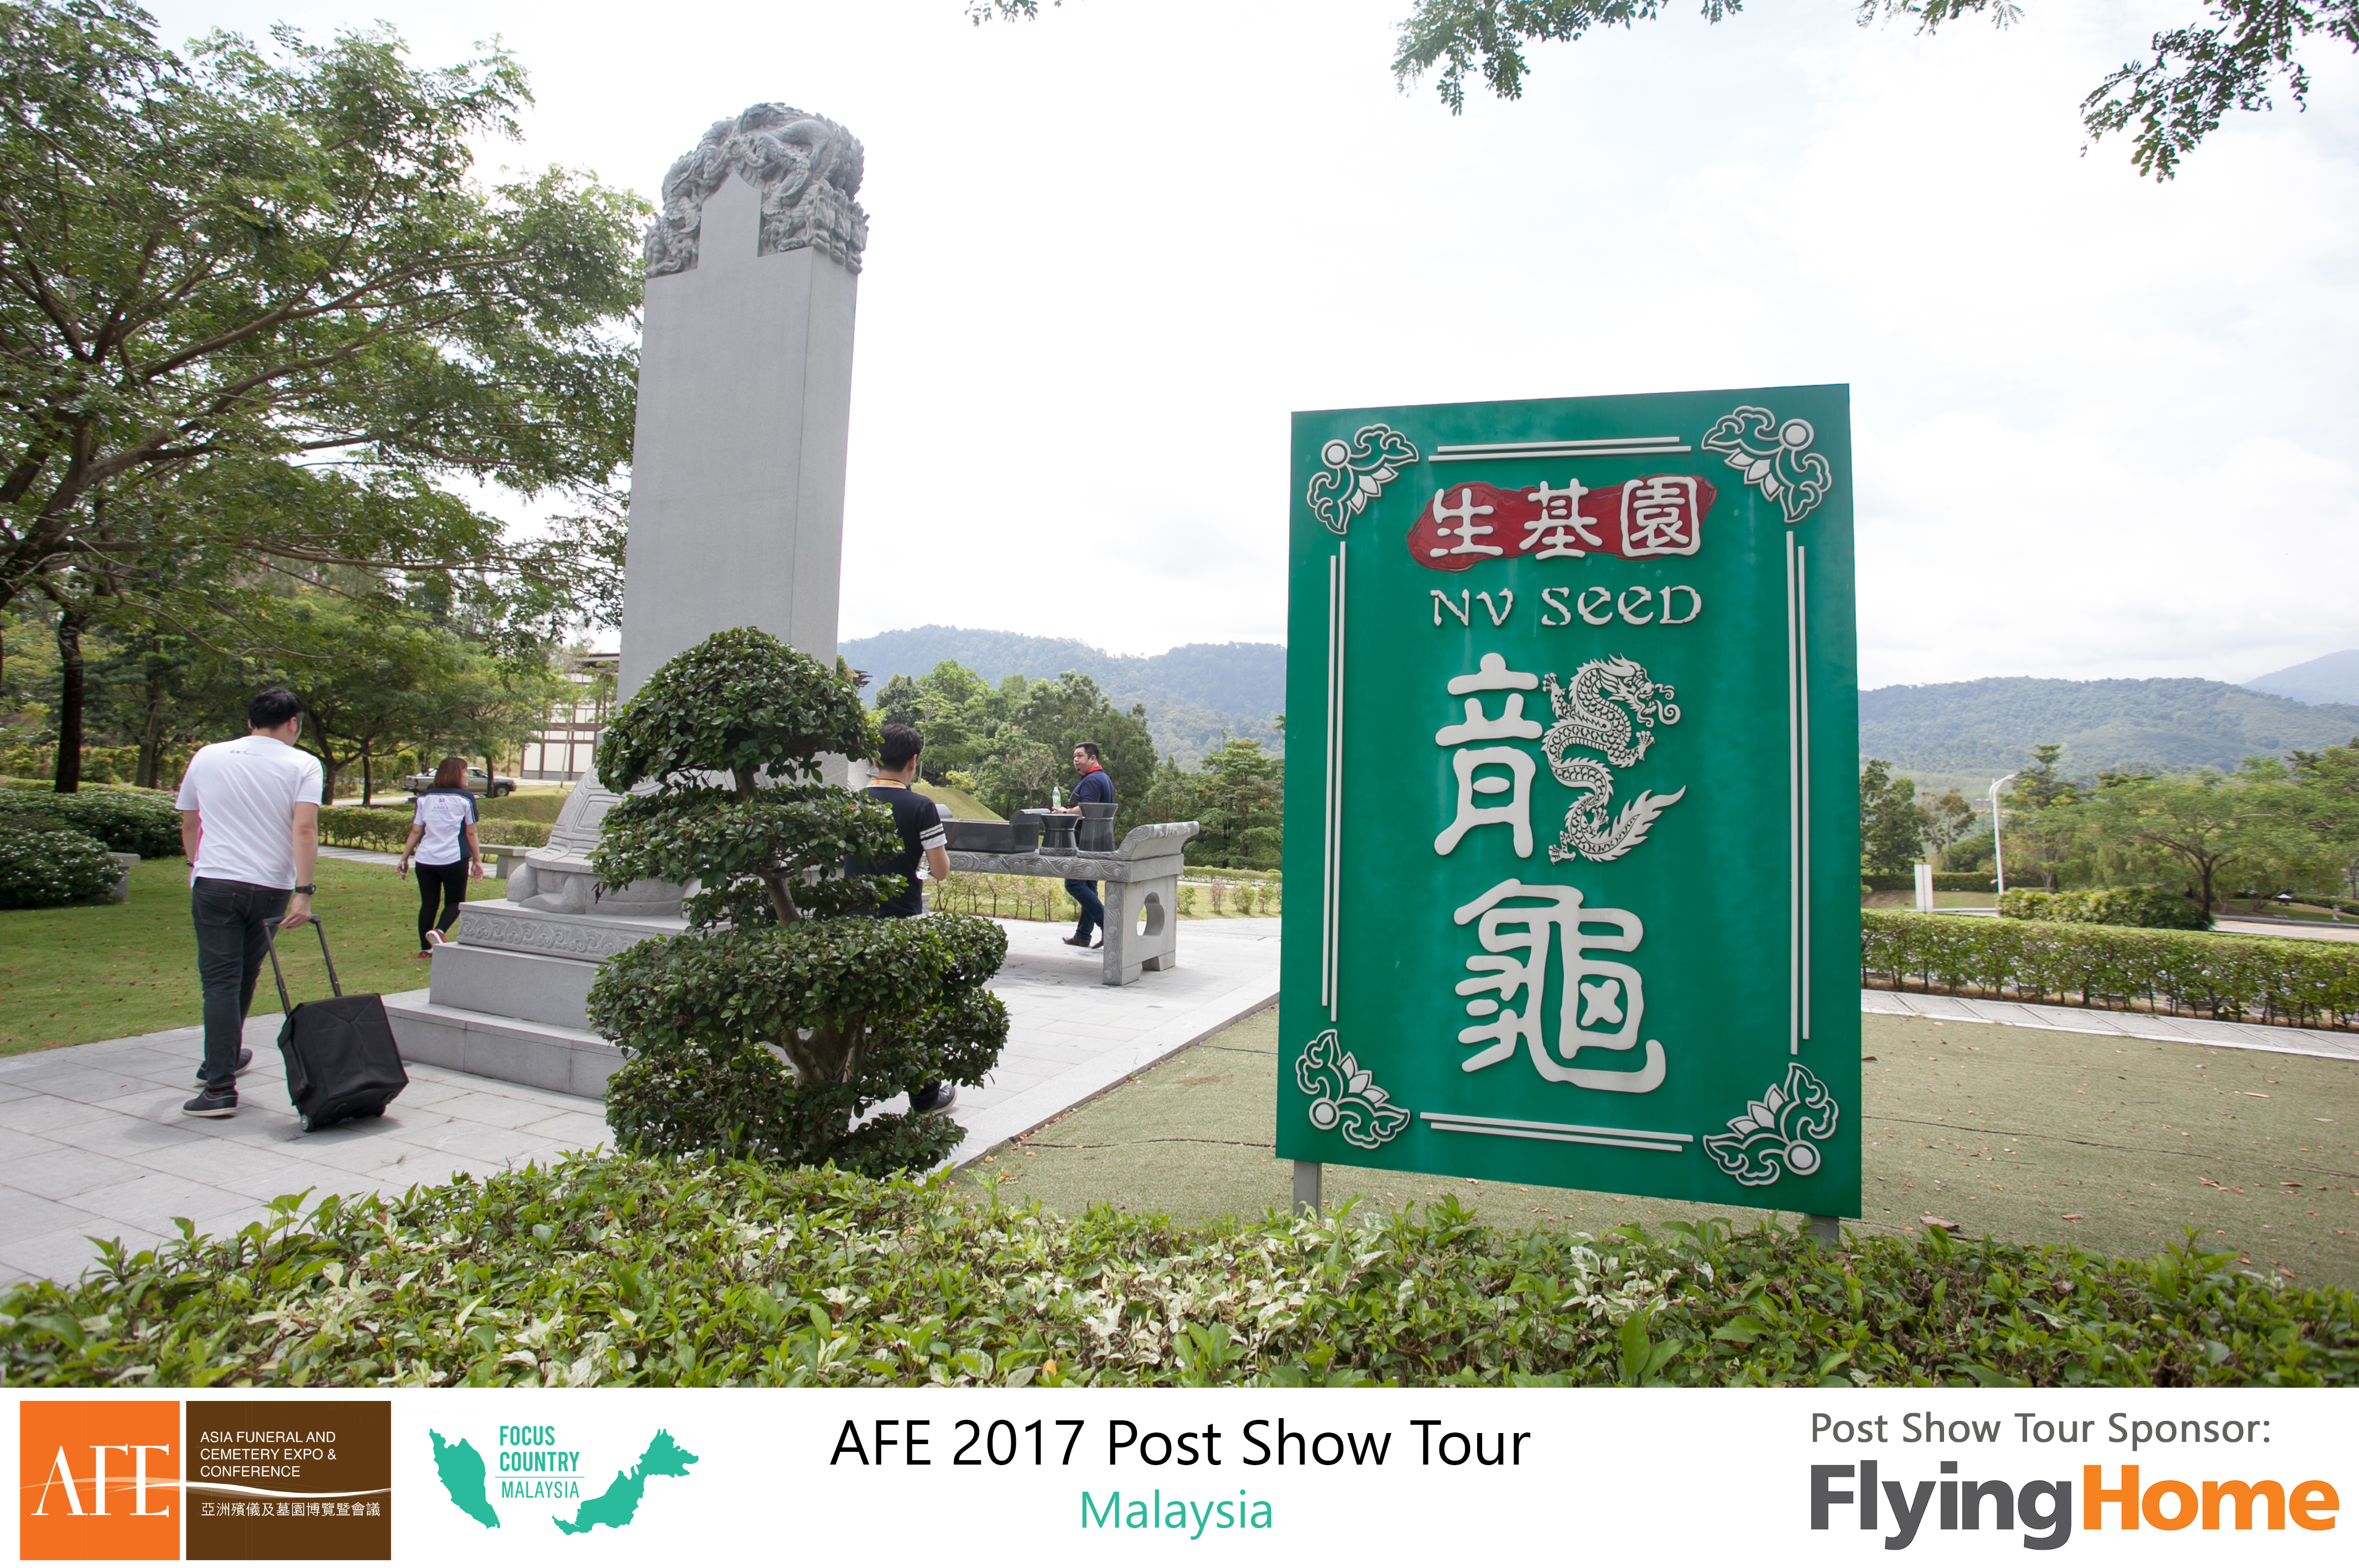 AFE Post Show Tour 2017 Day 2 - 10